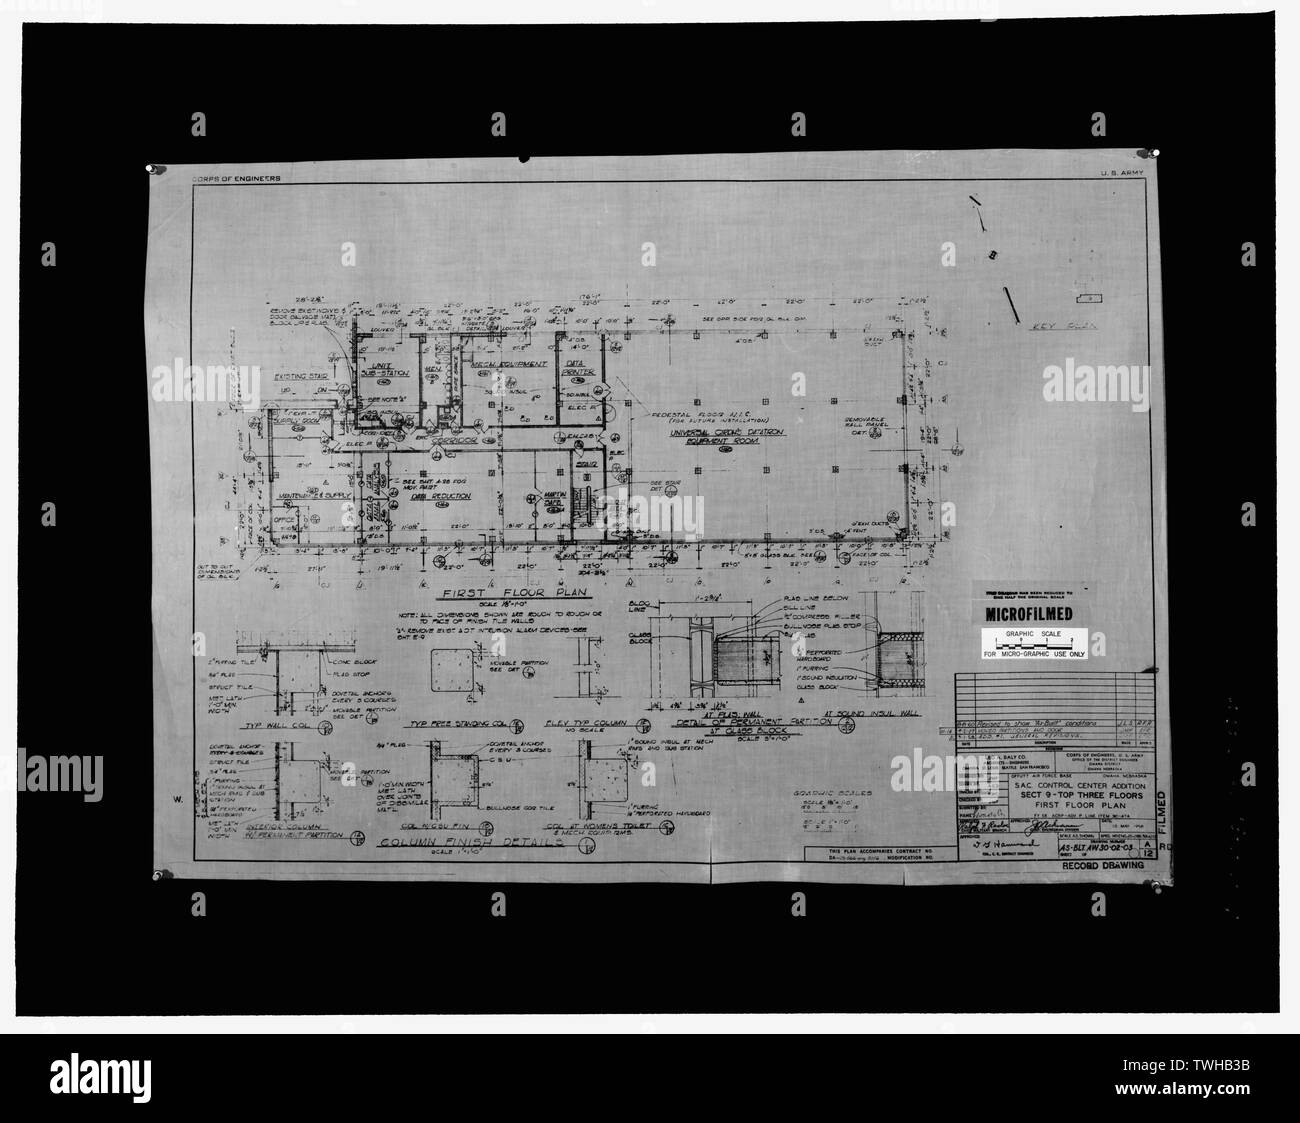 Sac Control Center Addition Sect 9 Top Three Floors First Floor Plan Drawing Number As Blt Aw30 02 03 Dated May 1958 Offutt Air Force Base Strategic Air Command Headquarters And Command Center Headquarters Building 901